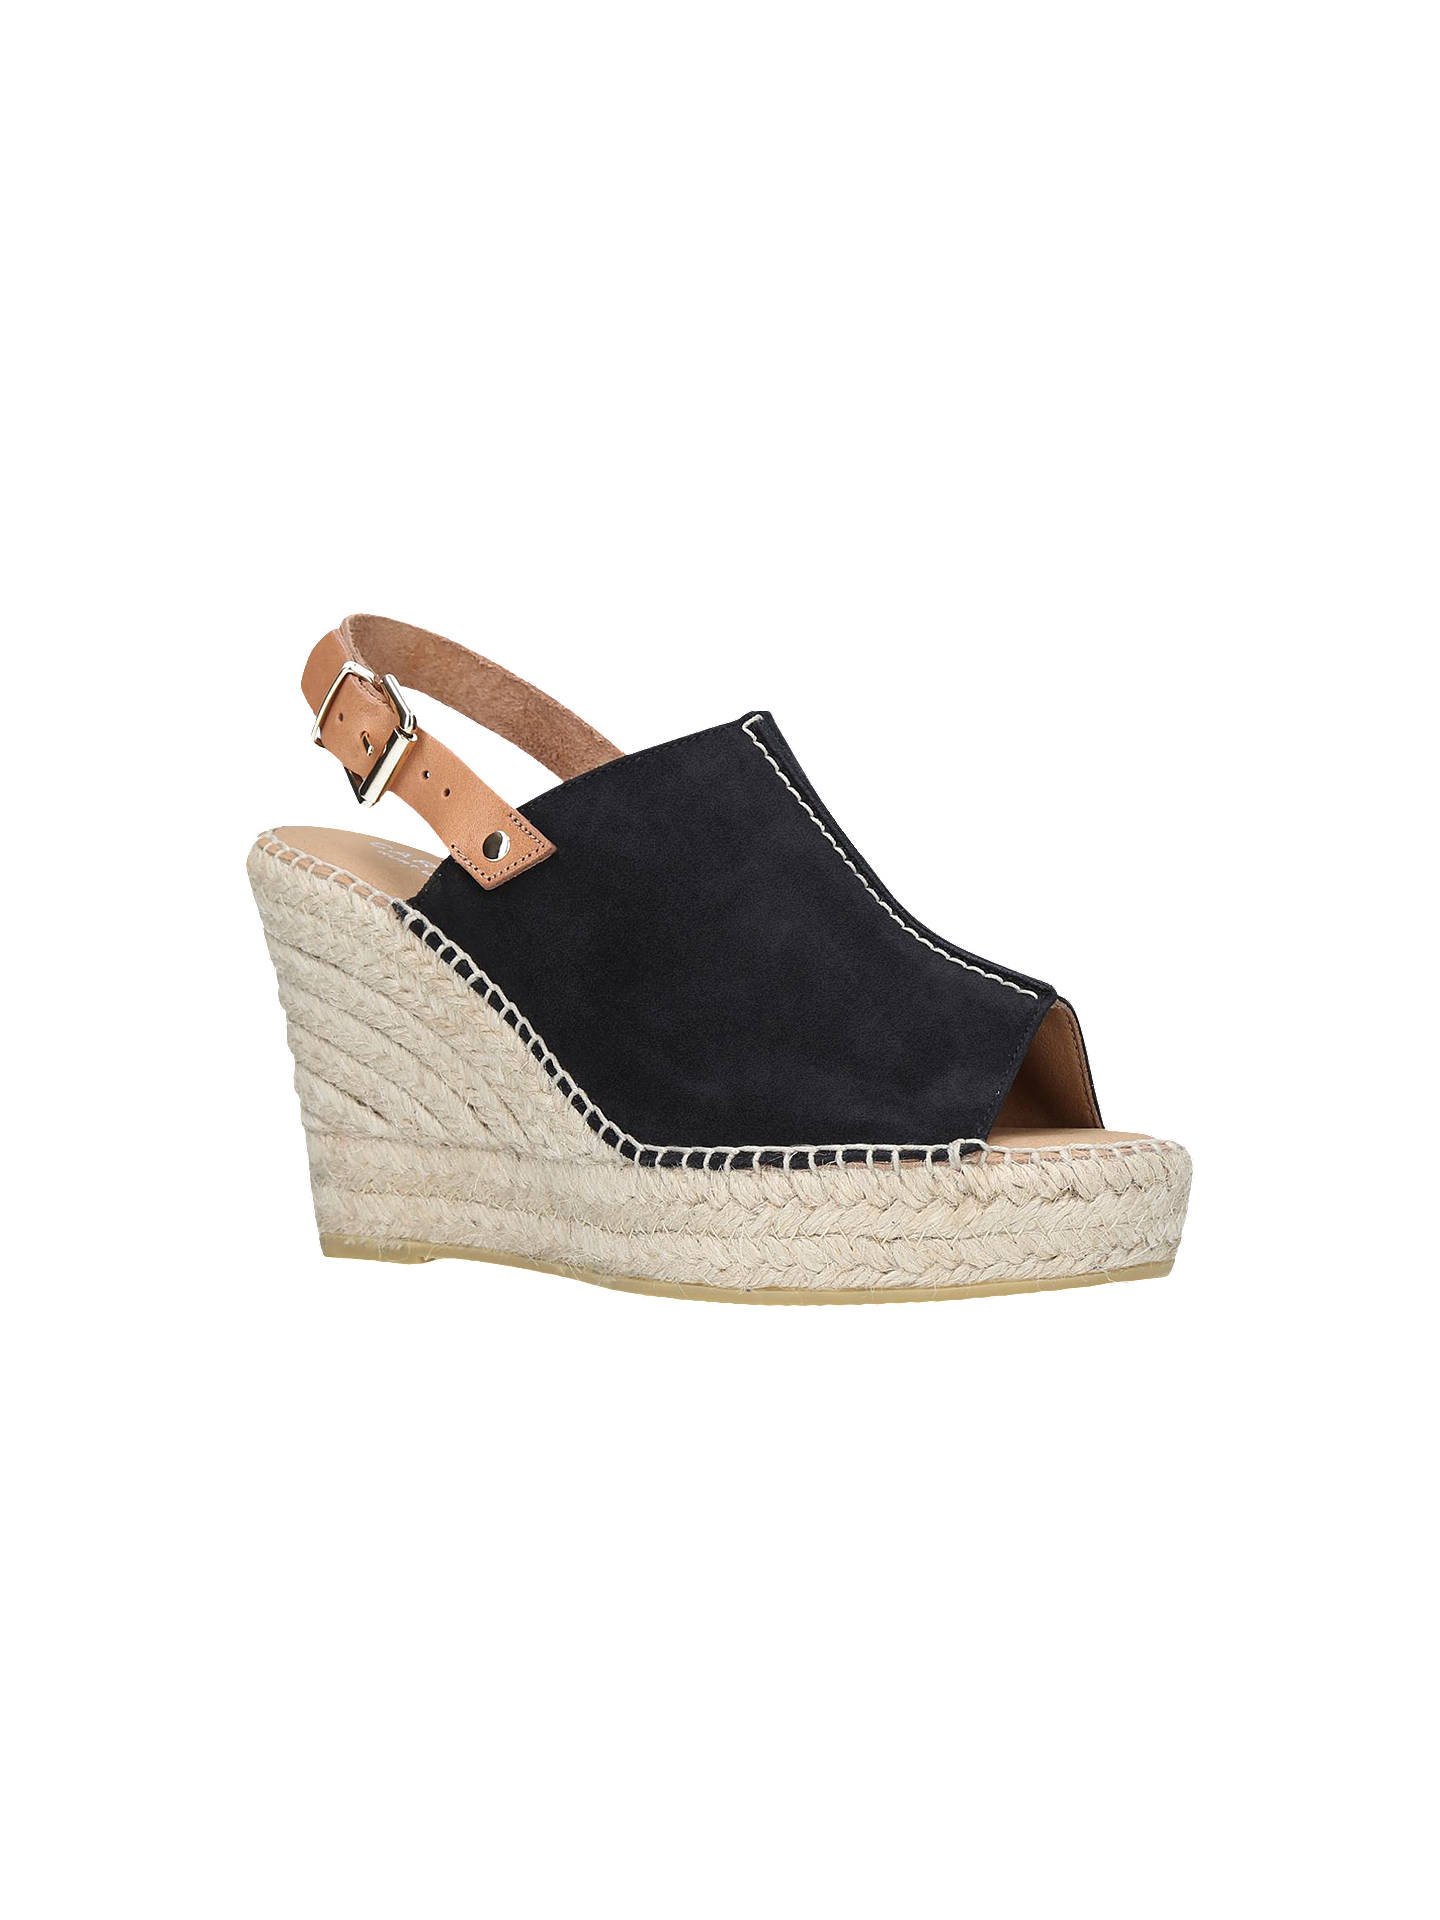 BuyCarvela Kloud Wedge Heel Sandals, Black Suede, 3 Online at johnlewis.com